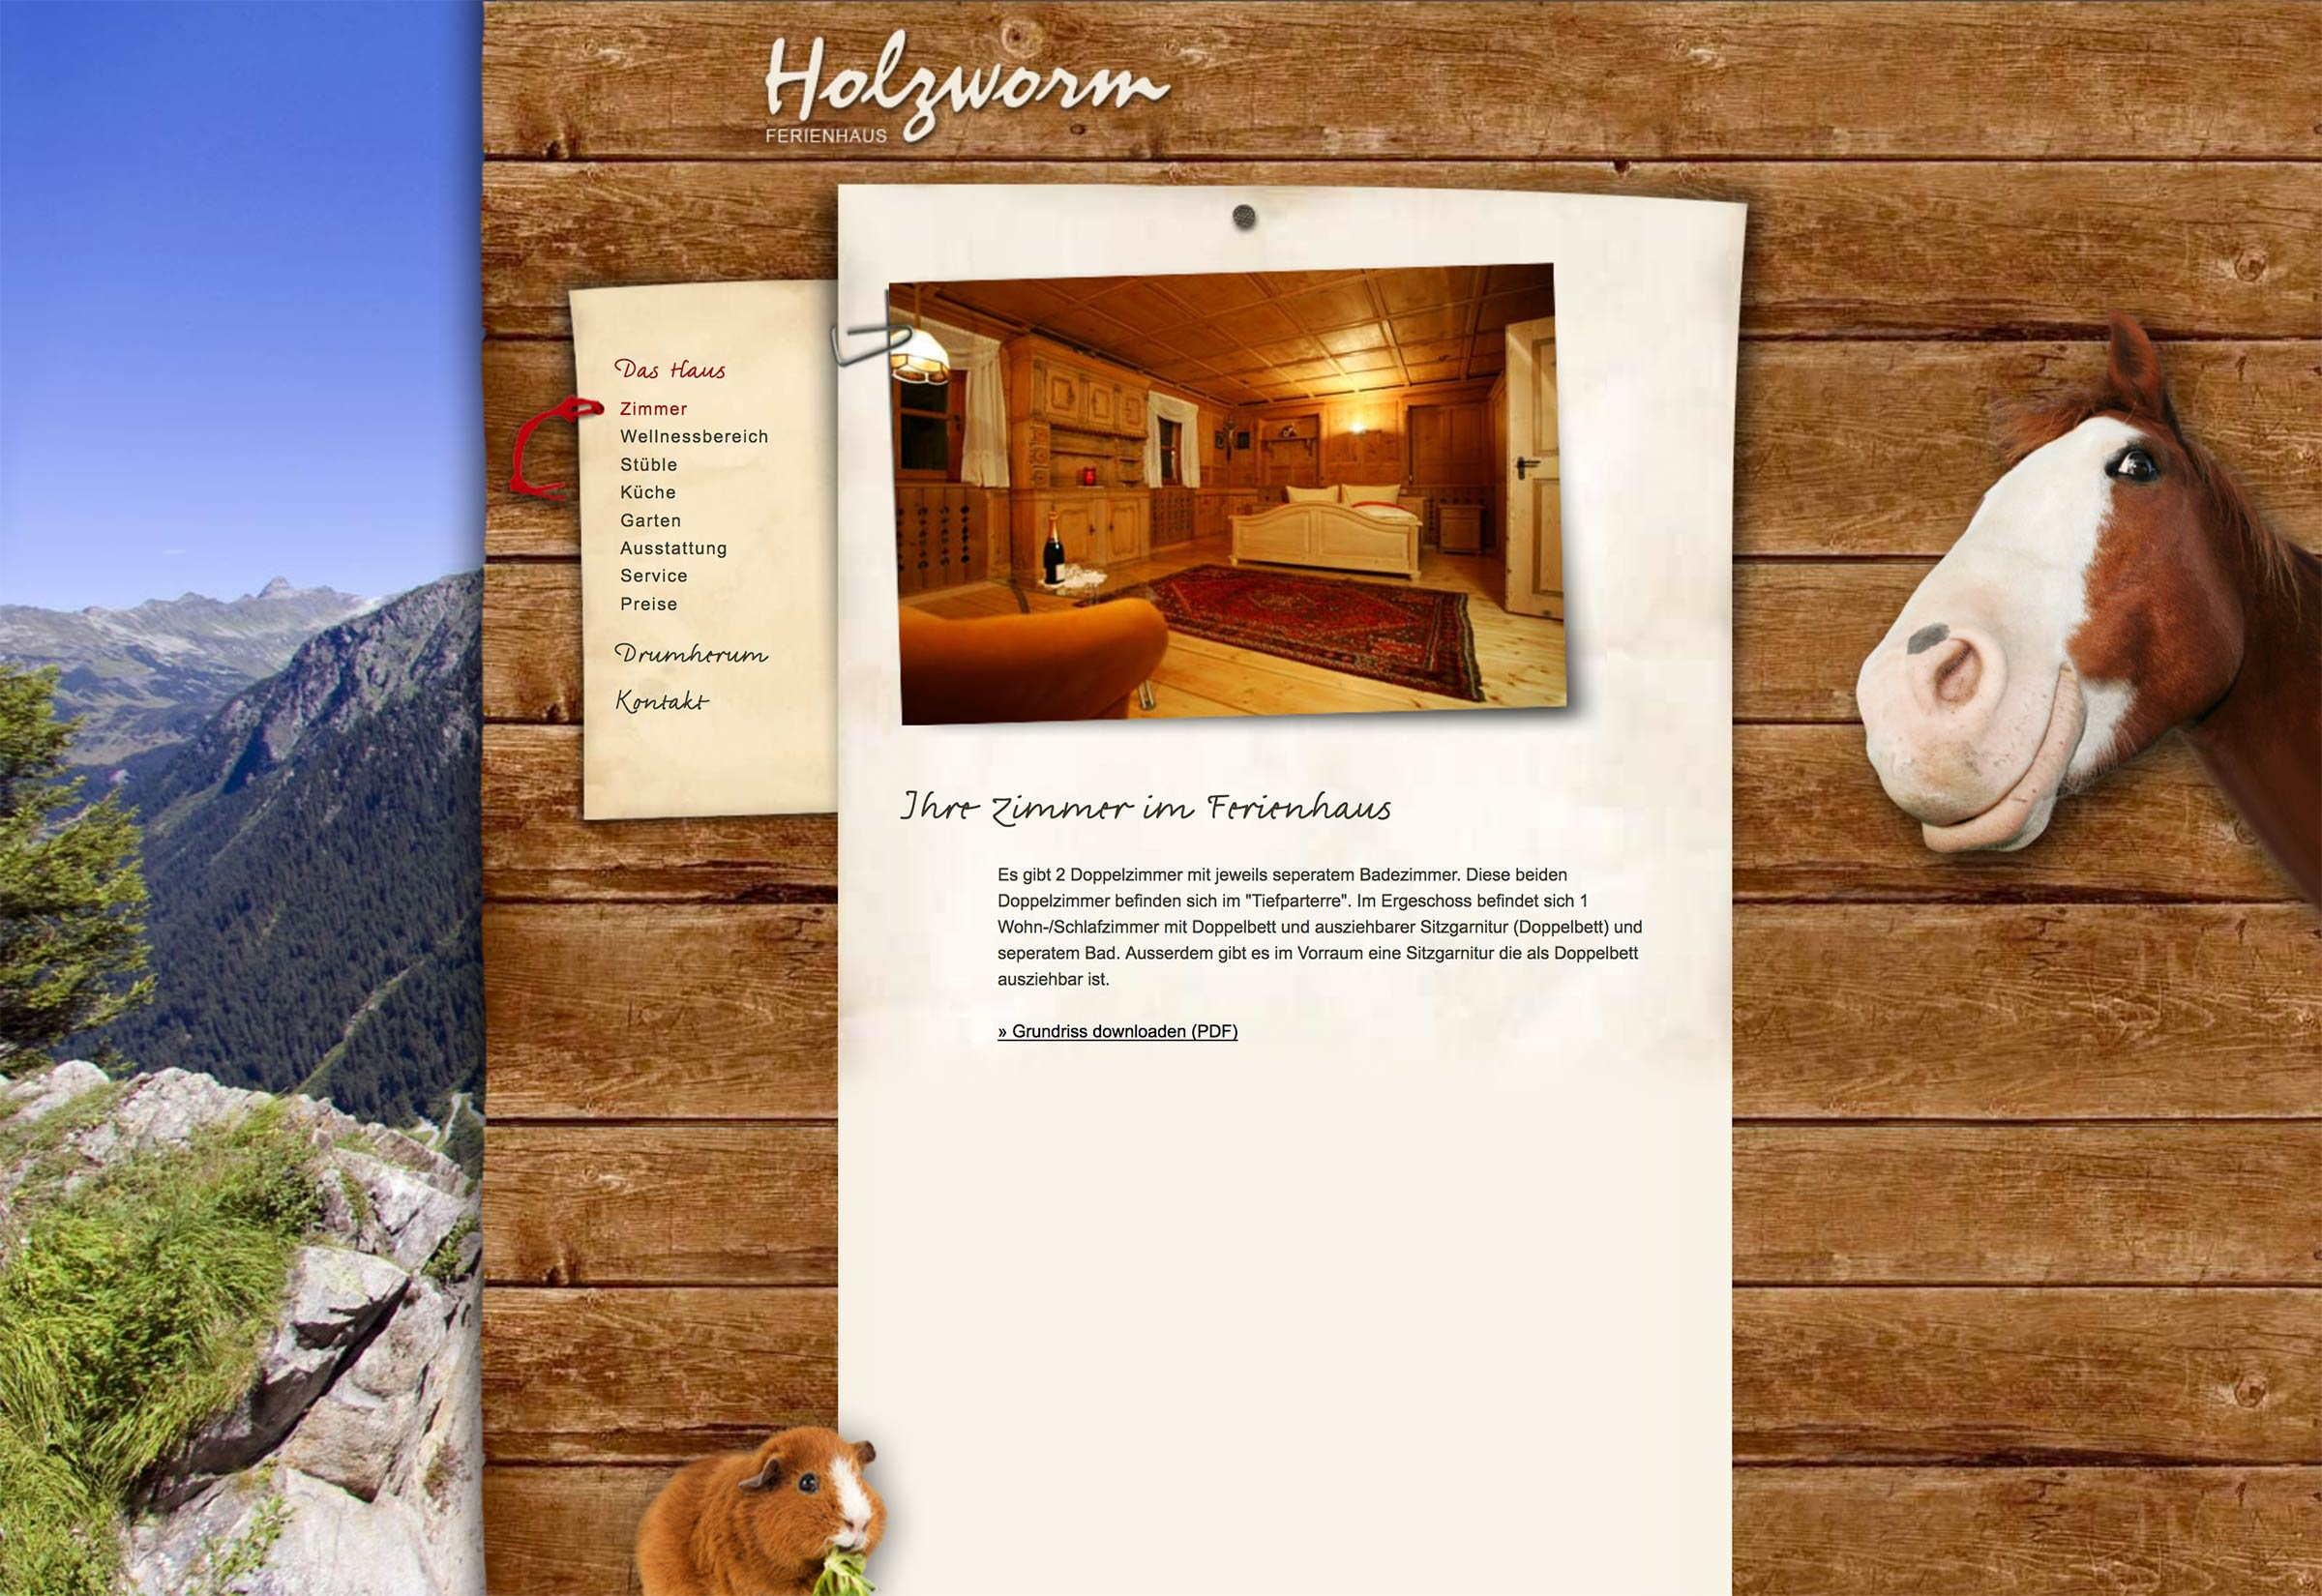 Website Haus Holzworm